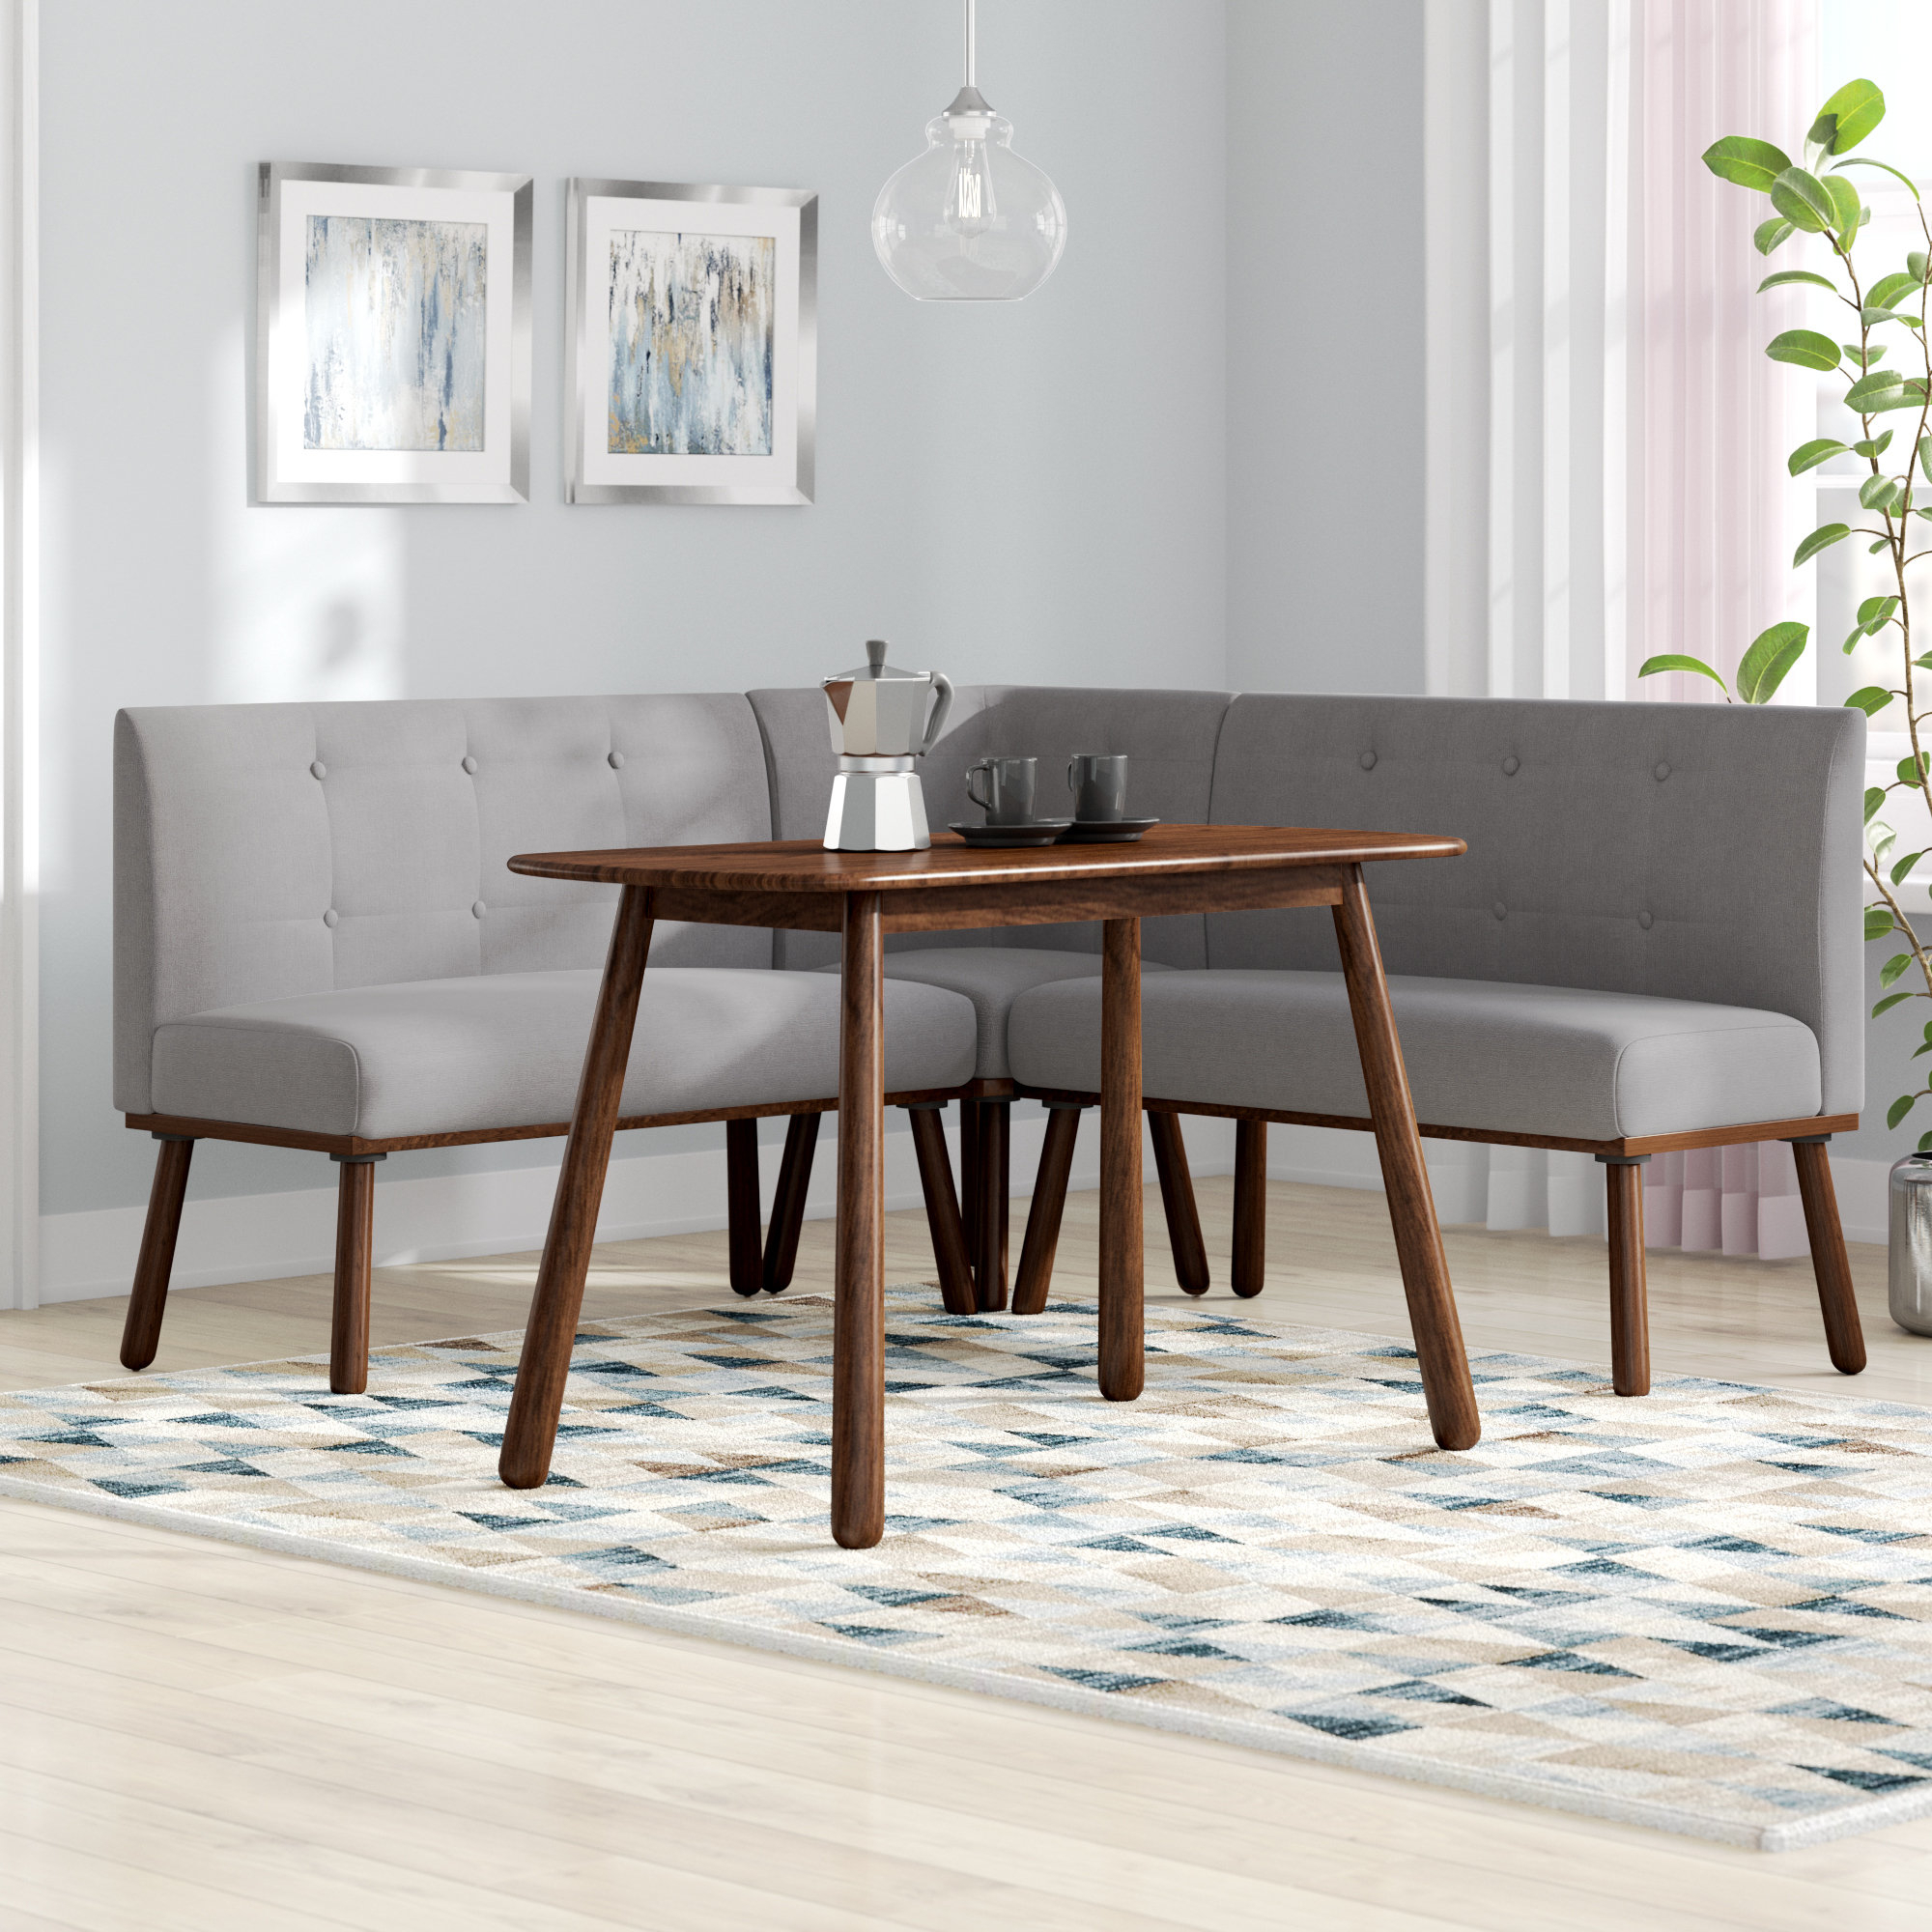 Bucci 4 Piece Breakfast Nook Rectangular Dining Set With Regard To Fashionable Liles 5 Piece Breakfast Nook Dining Sets (View 4 of 20)